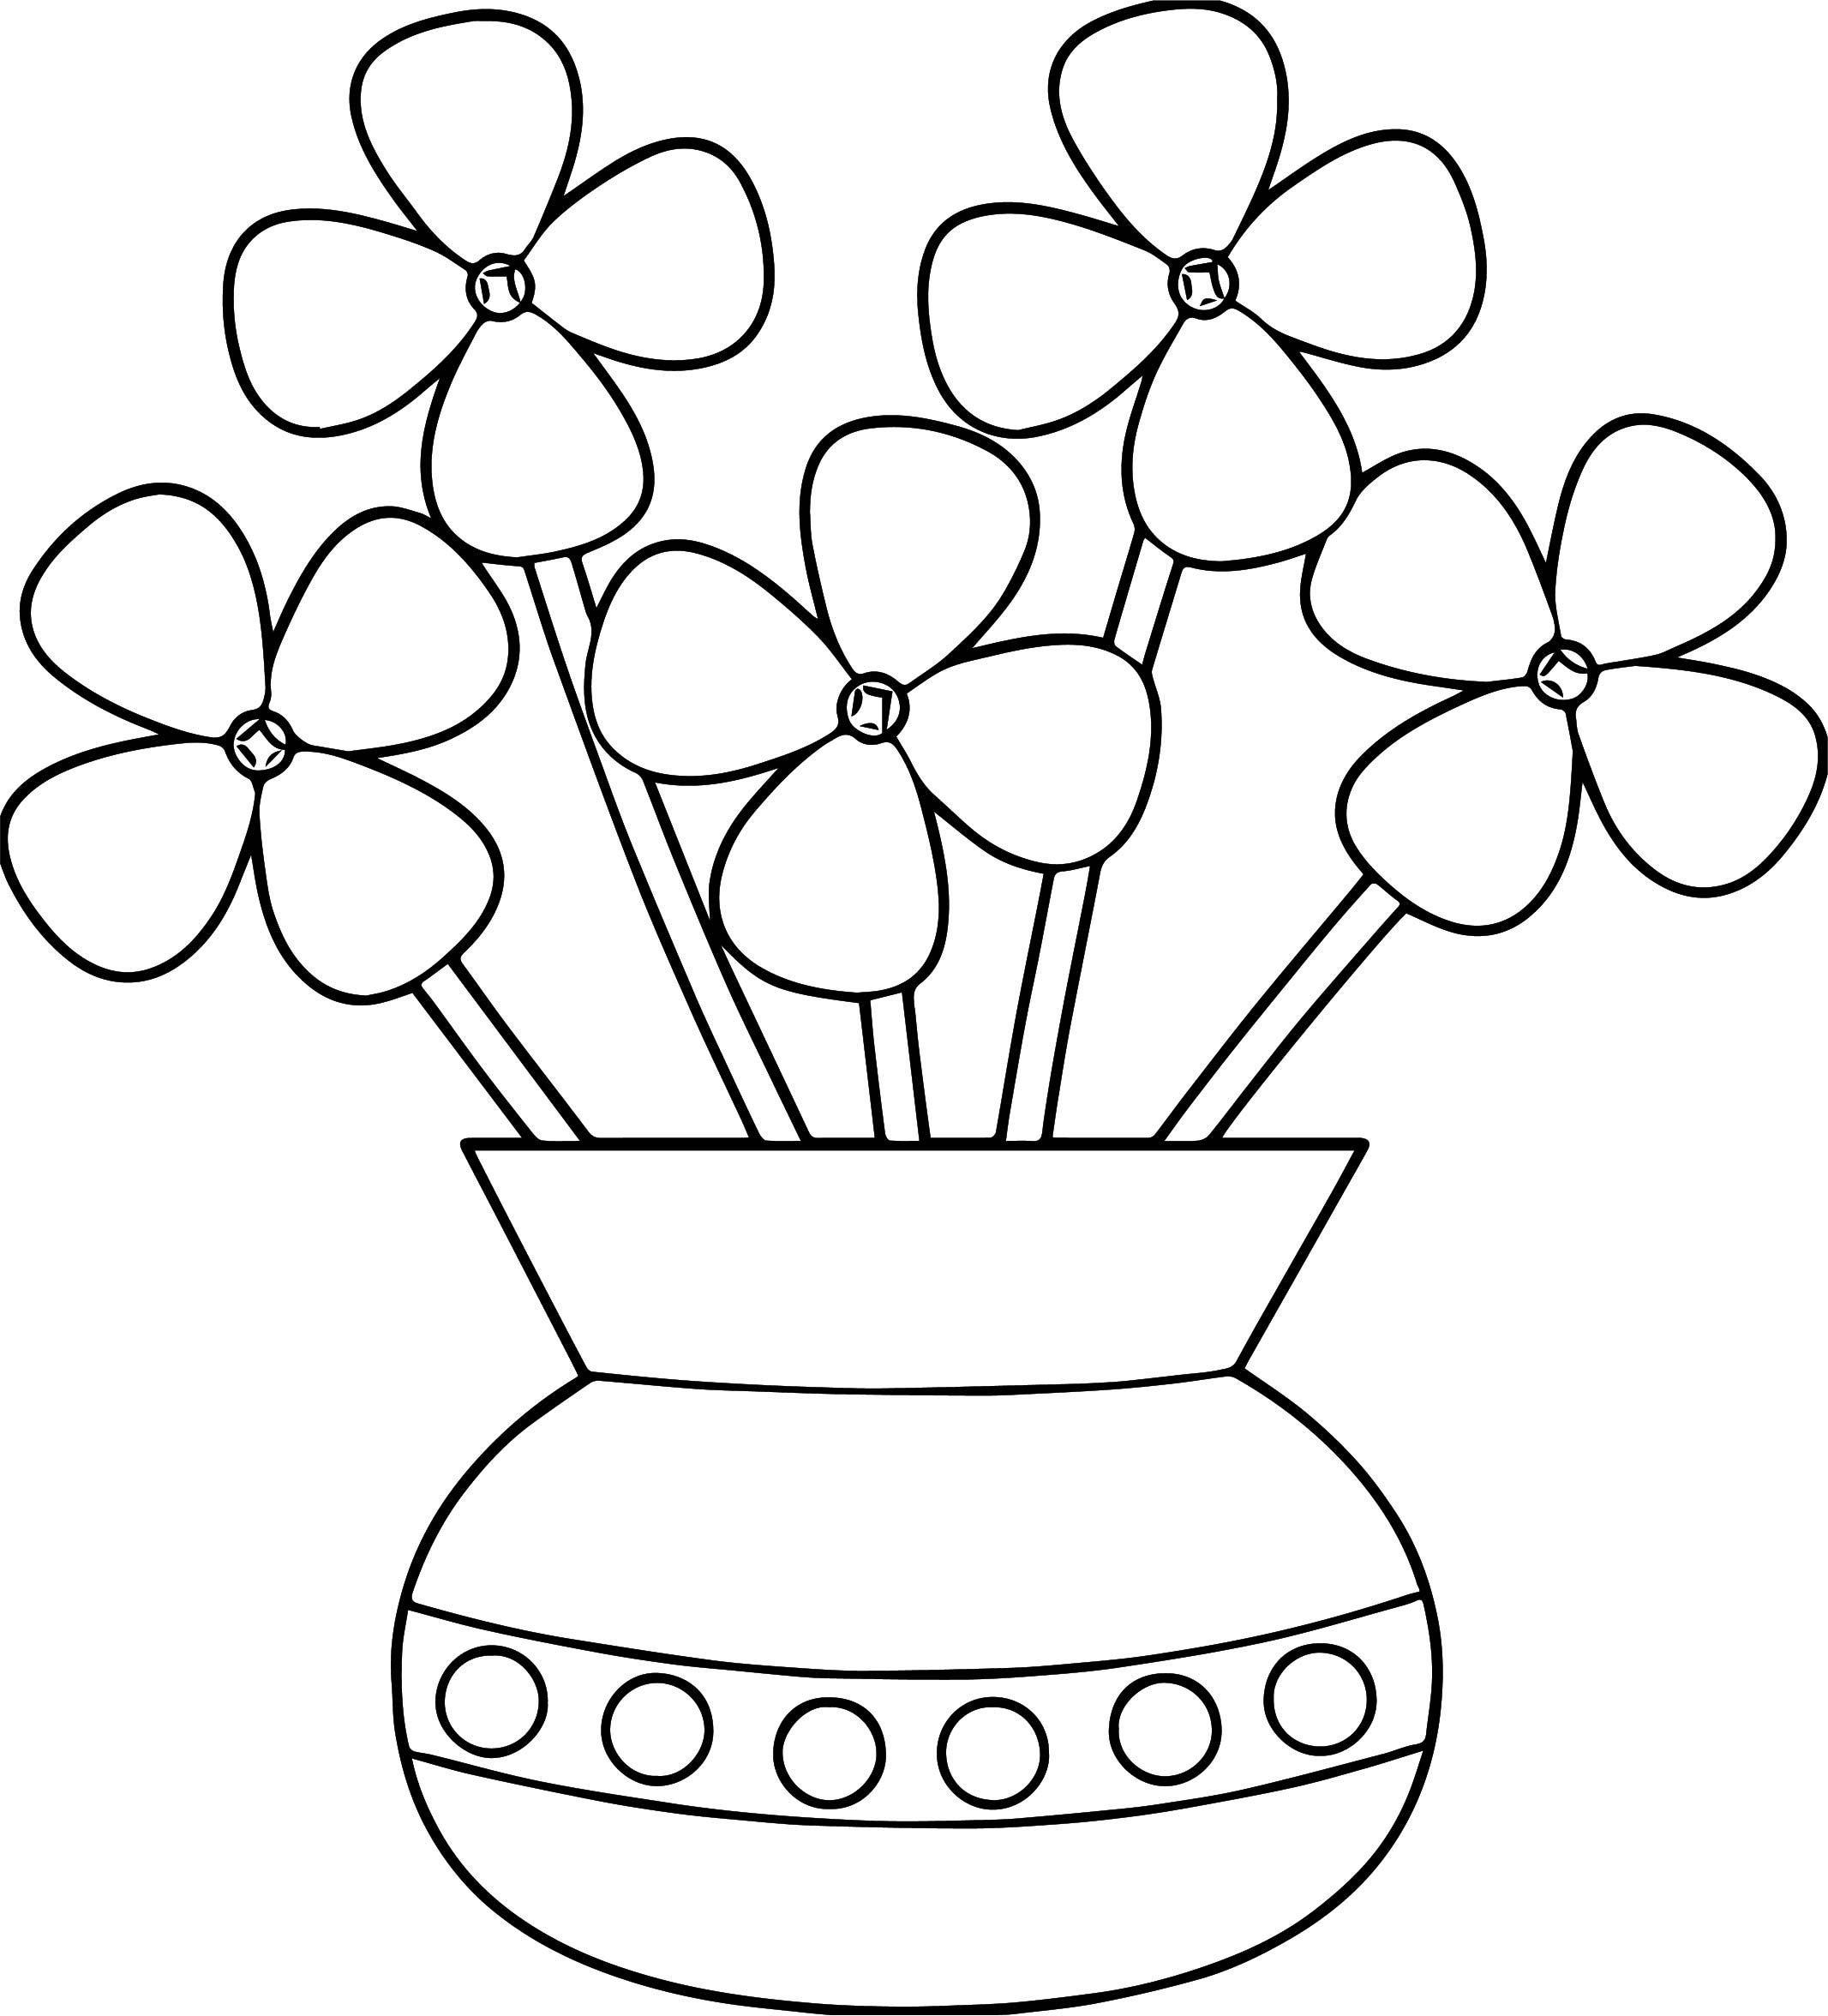 Printable Flower Coloring Pages Image By Tee On Placemat Patterns